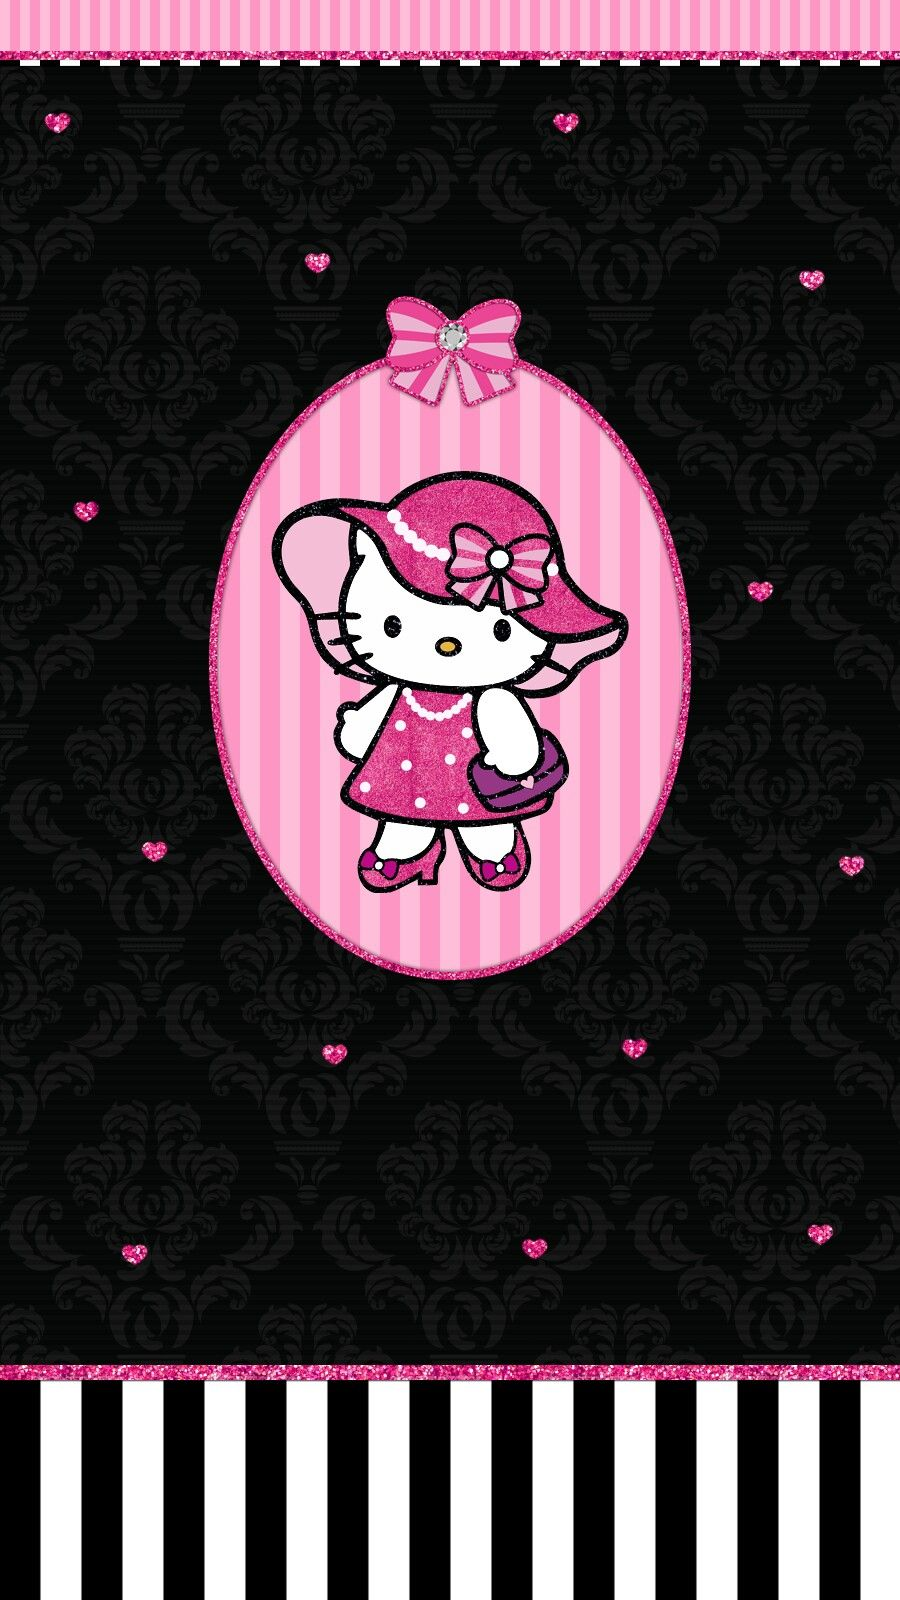 Download Wallpaper Hello Kitty Black - 6baab02b519f53a937cfff2b2d802d6d  You Should Have_128481.jpg